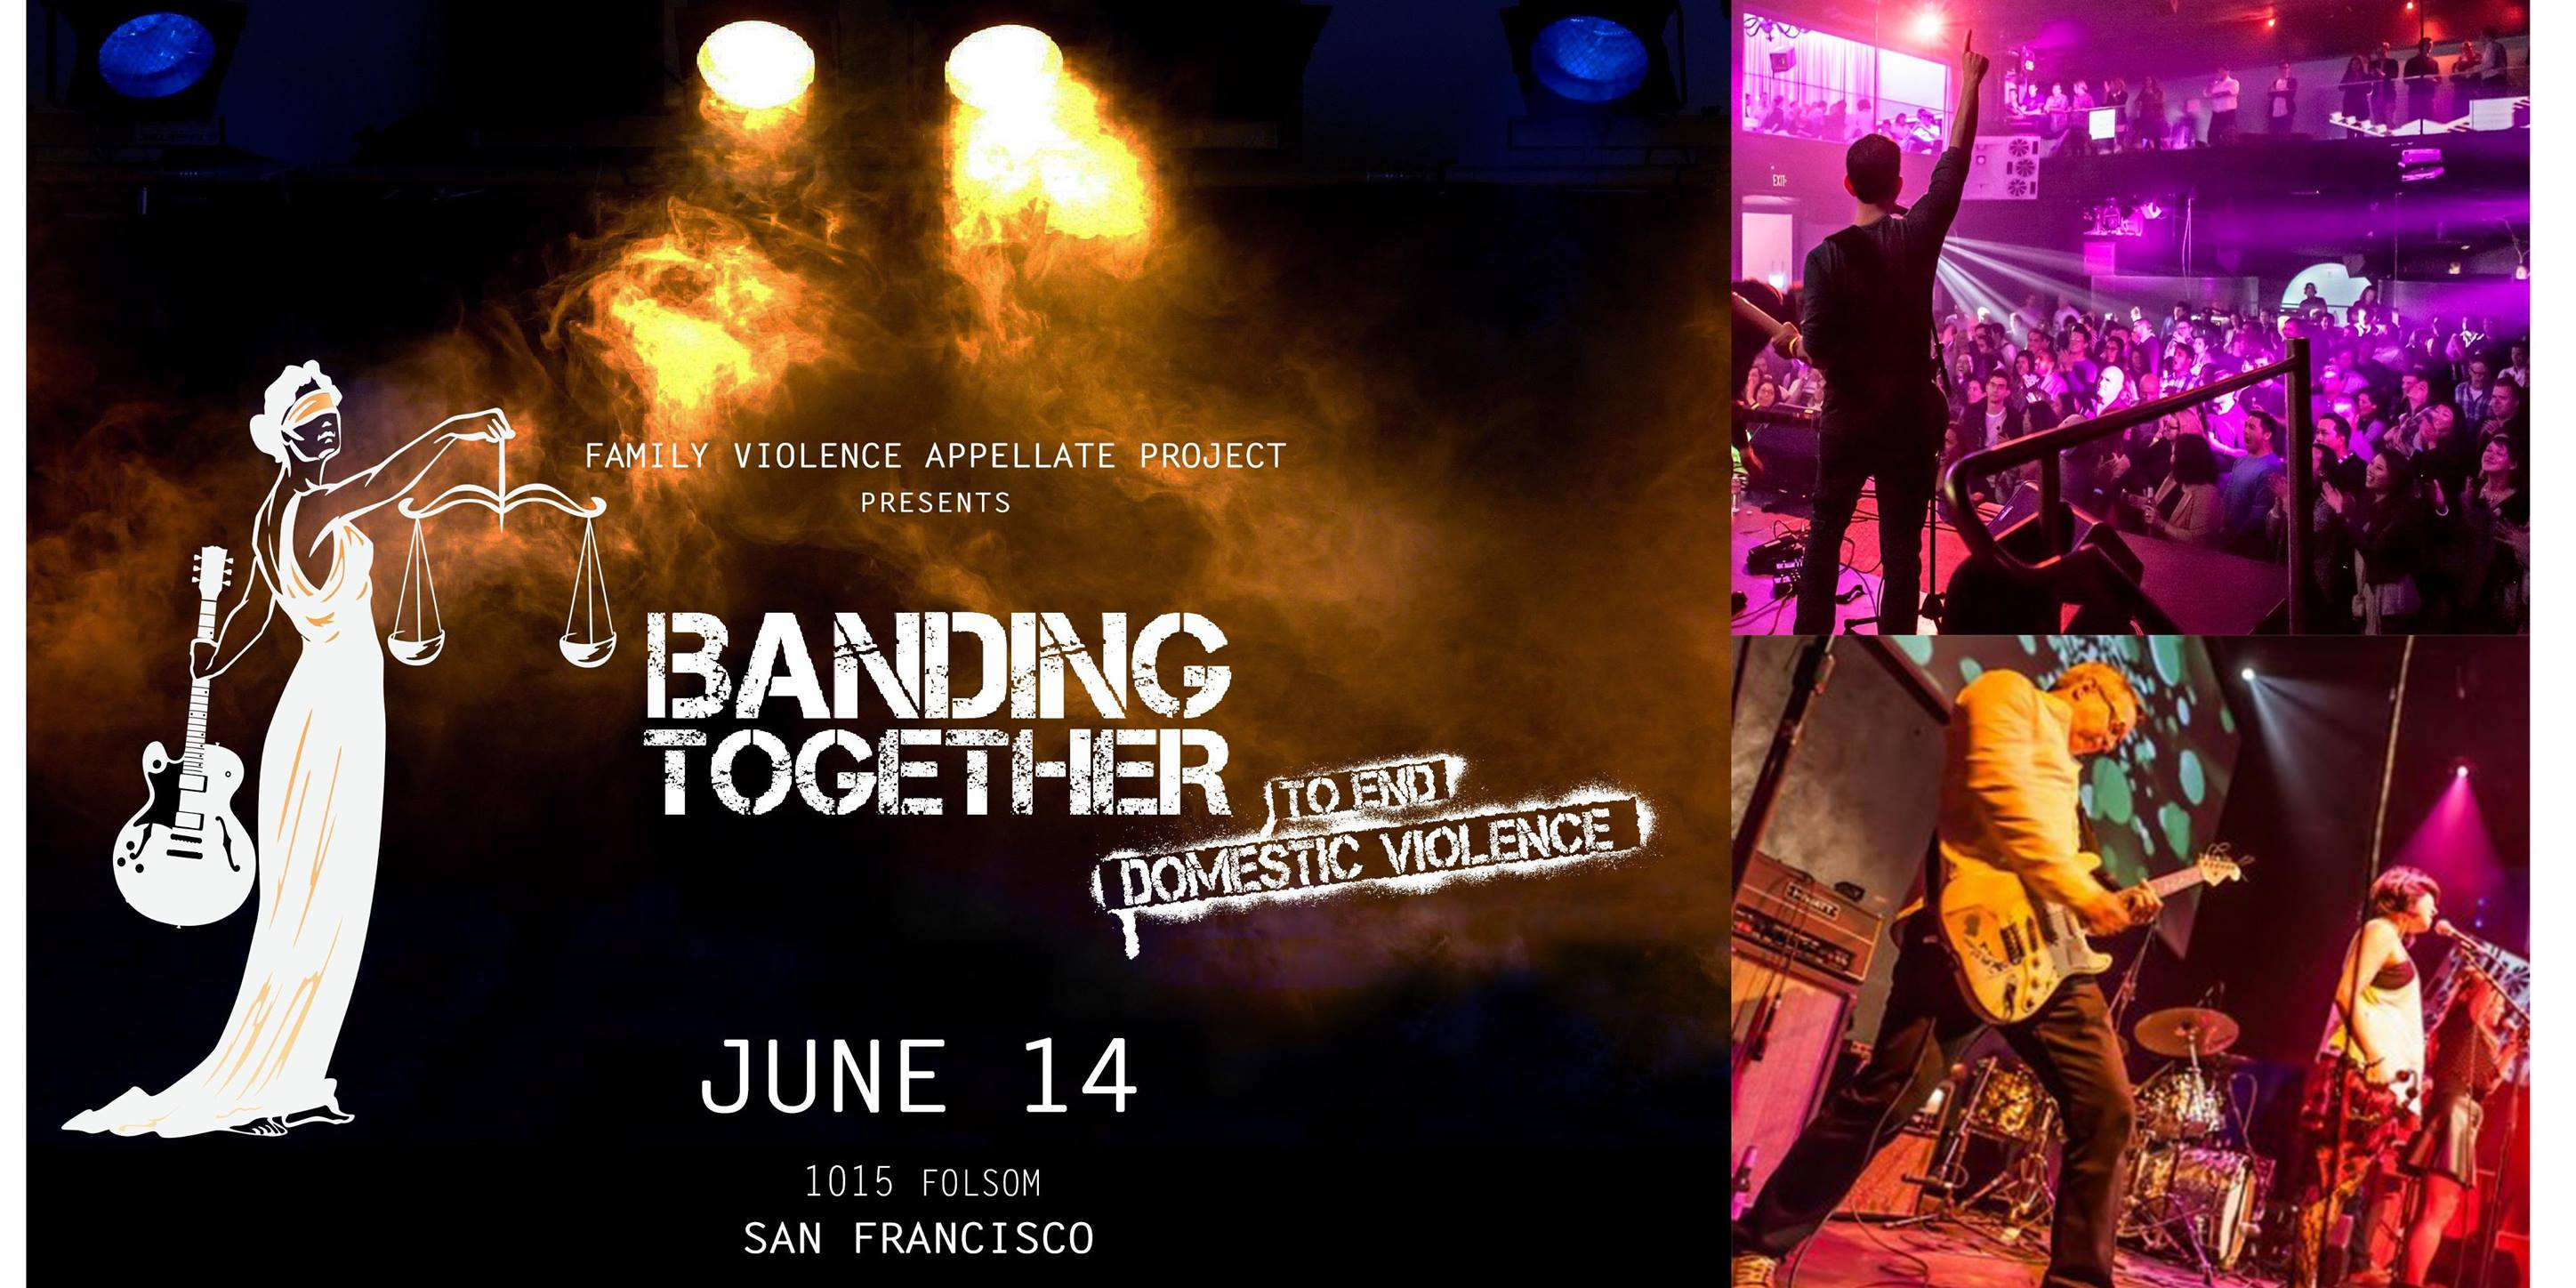 banding-together.jpg